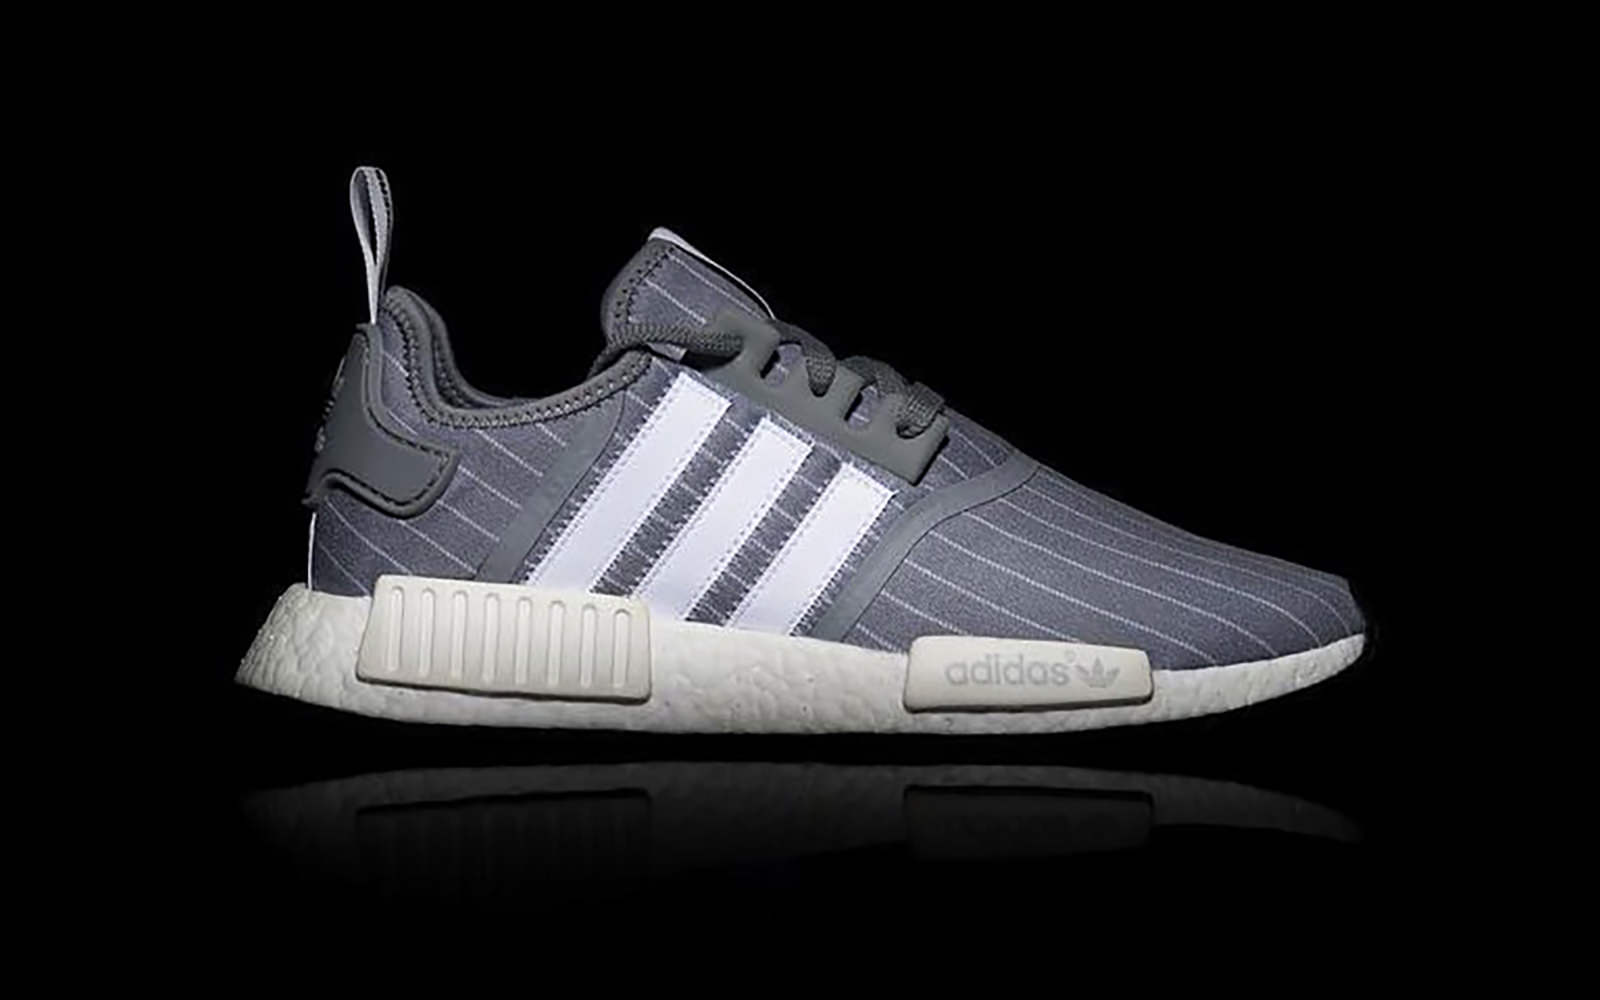 57d11529b5e3067a0d4c2dcc_bedwin-and-the-heartbreakers-adidas-nmd-r1-02